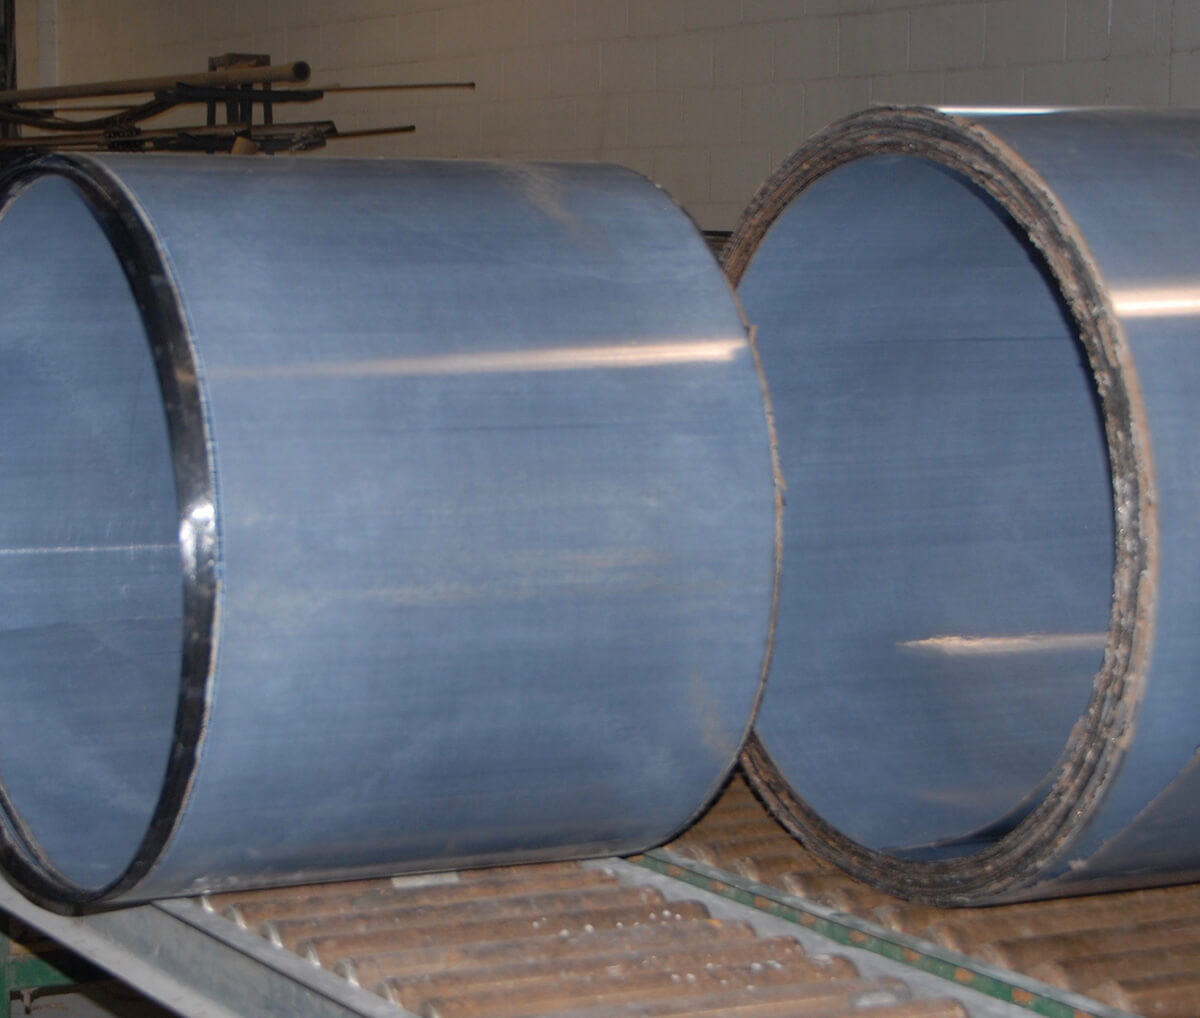 thermoplastic tubes